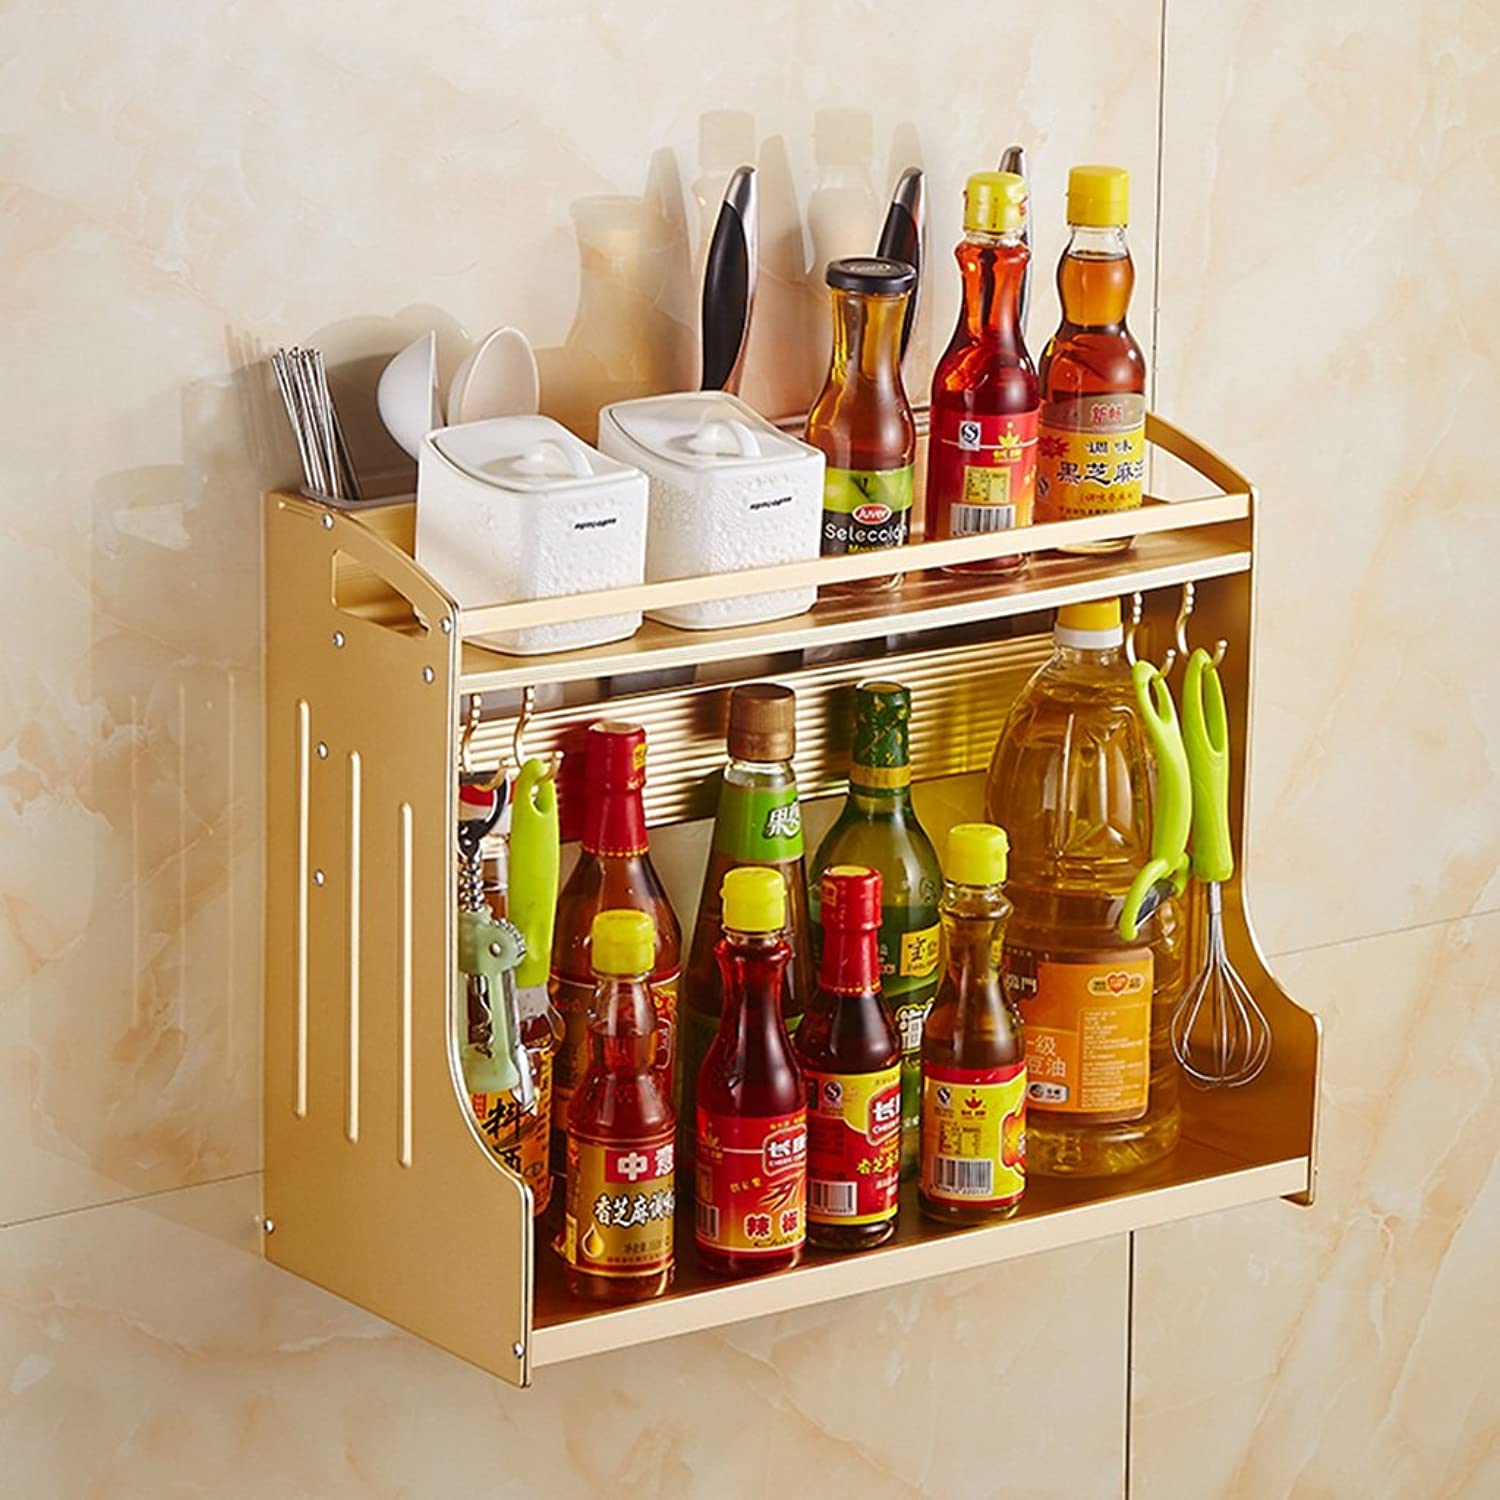 Kitchen Multifunctional Shelf - Double Layers Space Aluminum Kitchenware Storage Shelf Spice Shelf with Hooks and Chopsticks Spoon Storage Cup -by TIANTA (color   gold)